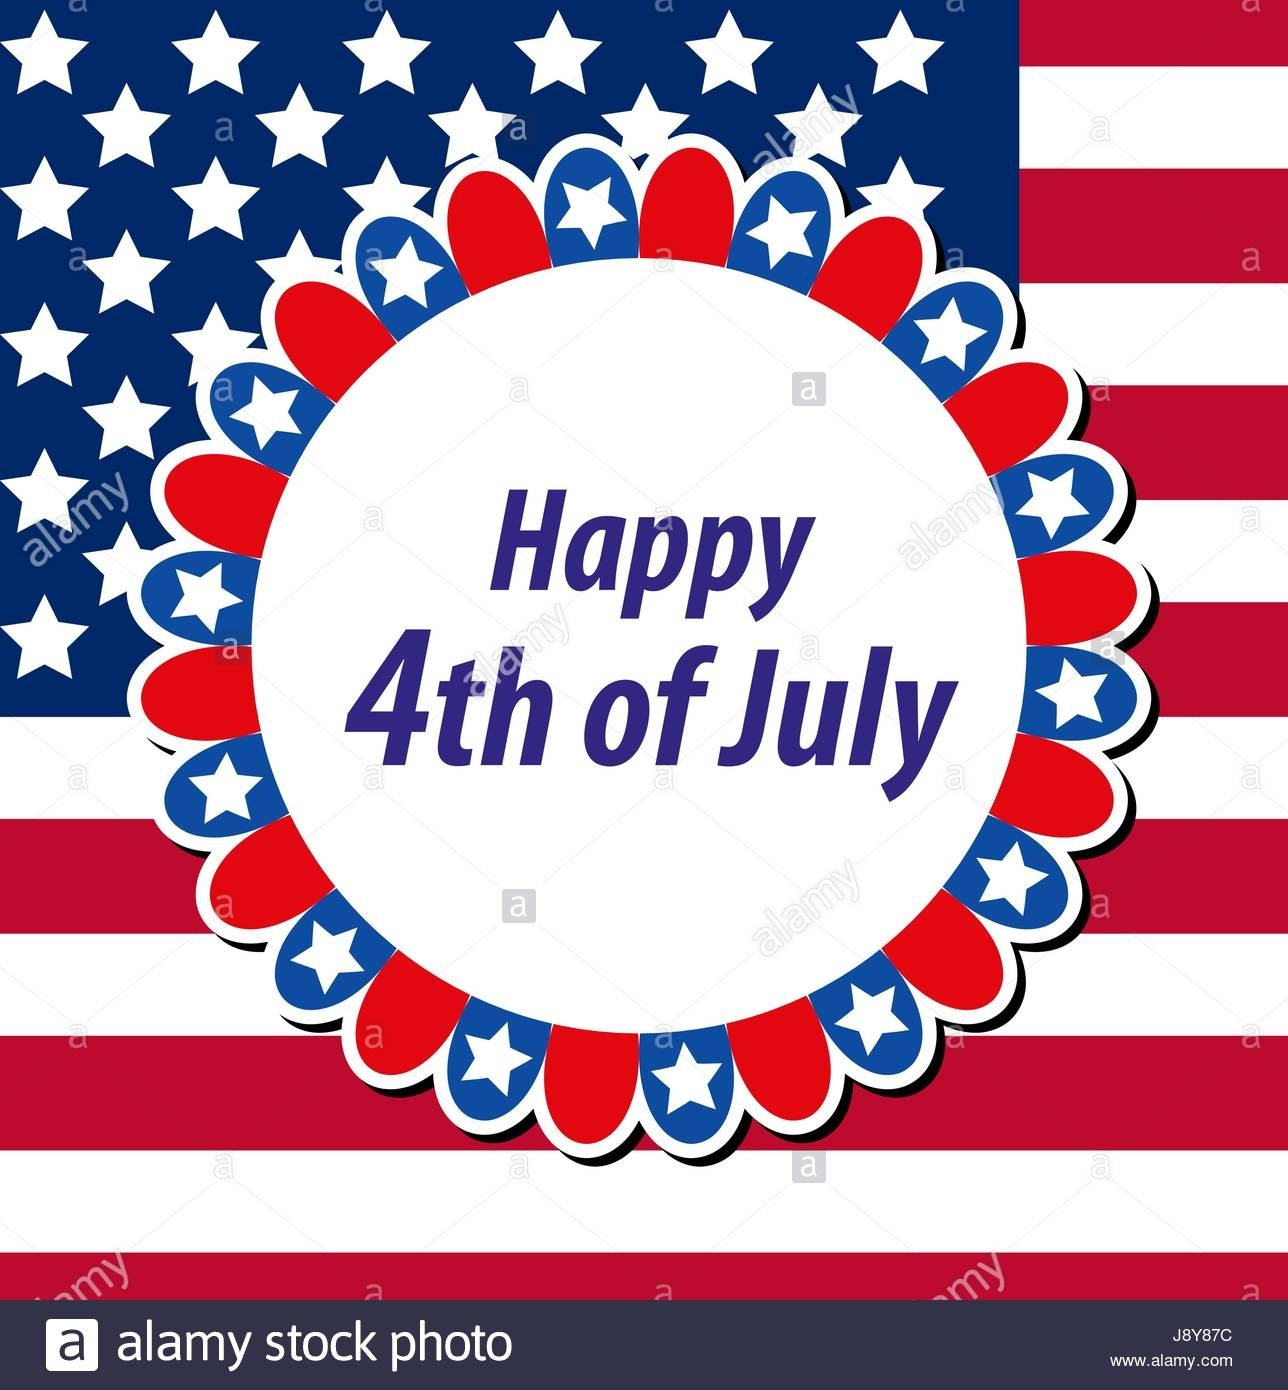 Happy 4Th July Greeting Card, Poster. American Independence-July 4Th Closed Sign Template